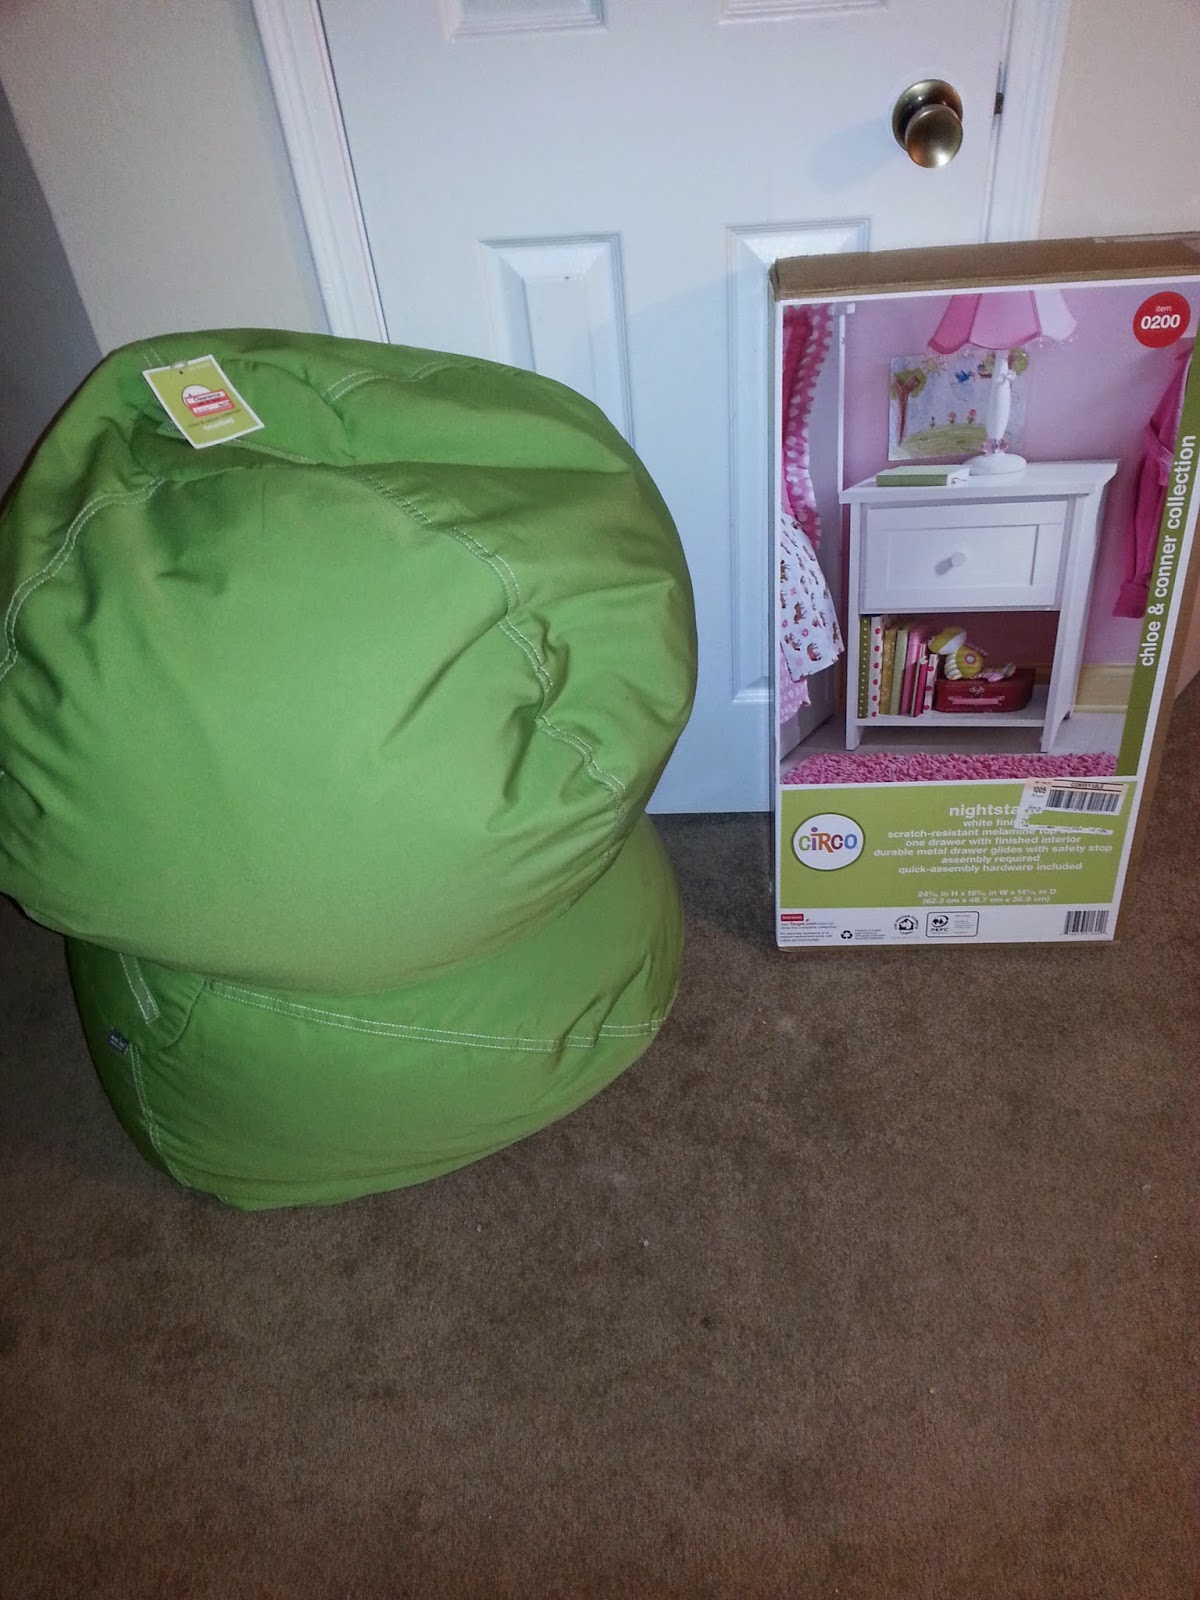 target bean bag chairs toddler human touch chair covers run 6 23 70 off kids bedroom furniture and